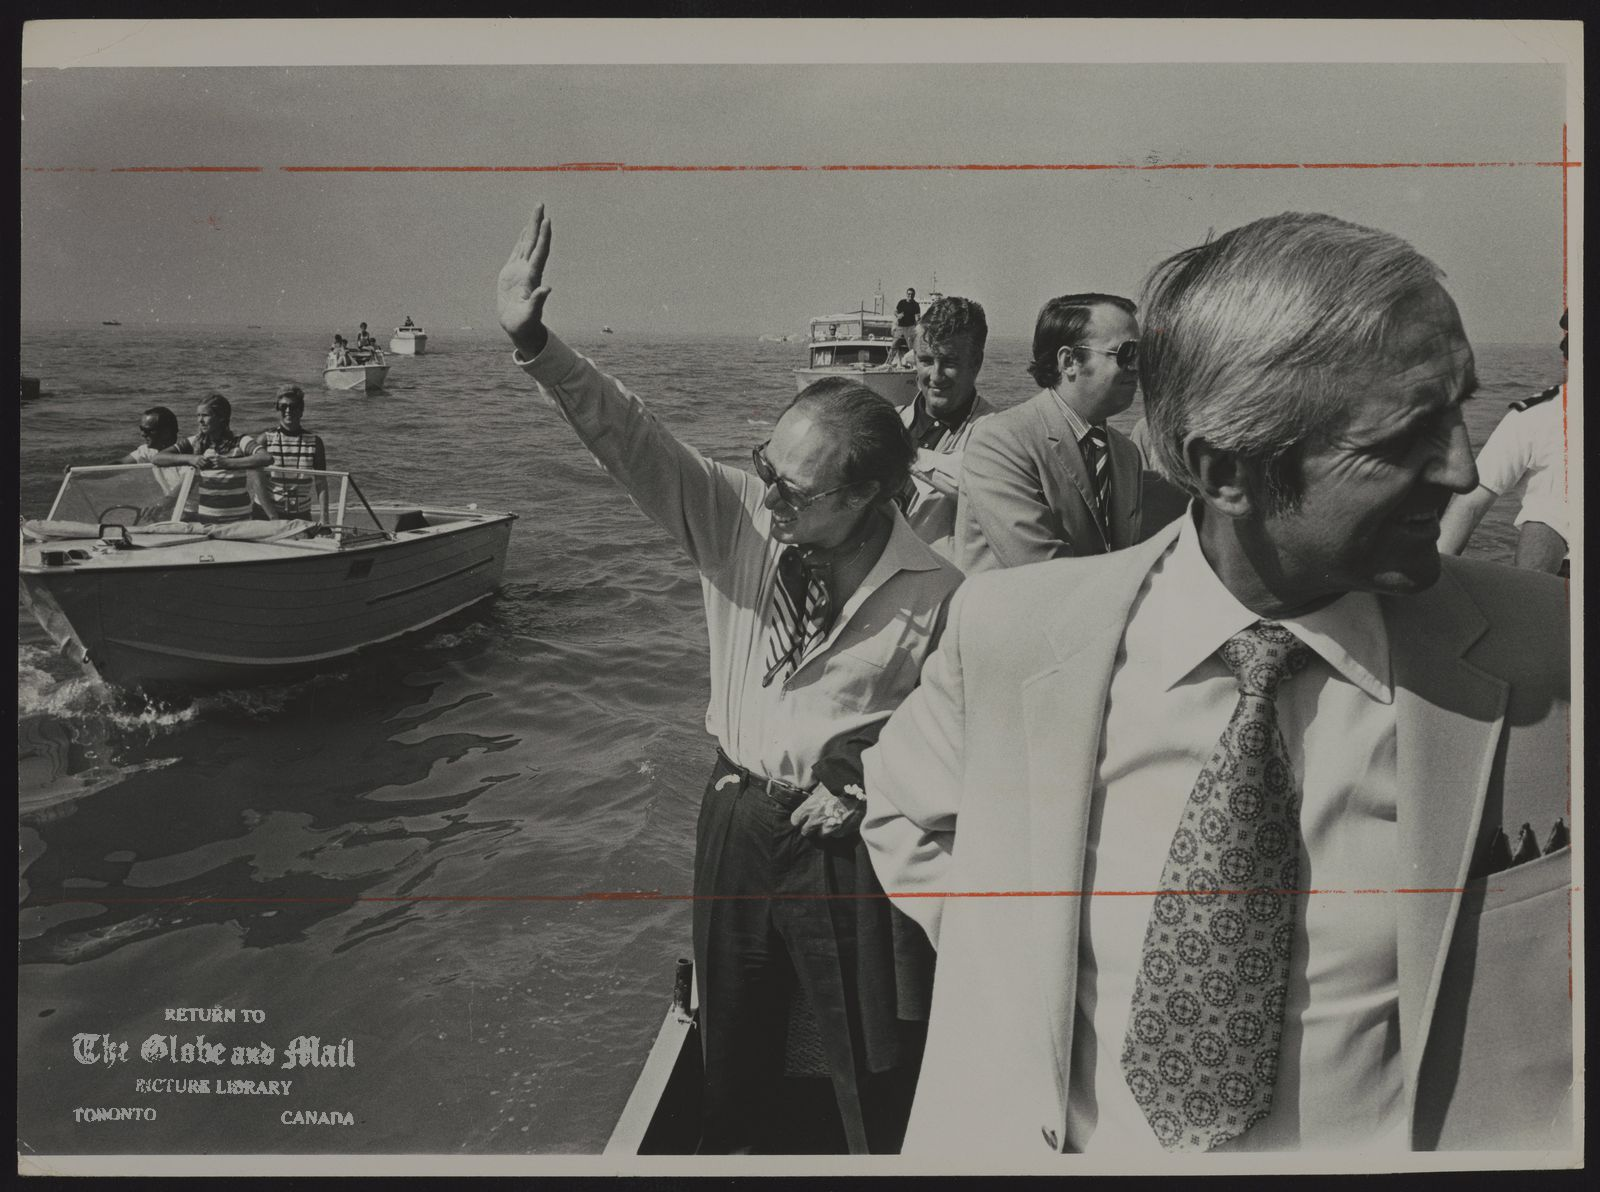 Pierre TRUDEAU Montreal. Politician On his way to World Rowing Championships in St. Catharines yesterday, Prime Minister Pierre Trudeau waves to pleasure boaters near Port Dalhousie after leaving the Coast Guard icebreaker Griffon. Energy and Resources Minister J.J. Greene is in, the foreground. They boarded the Griffon in Toronto.-- Dick Beddoes column, Page 22